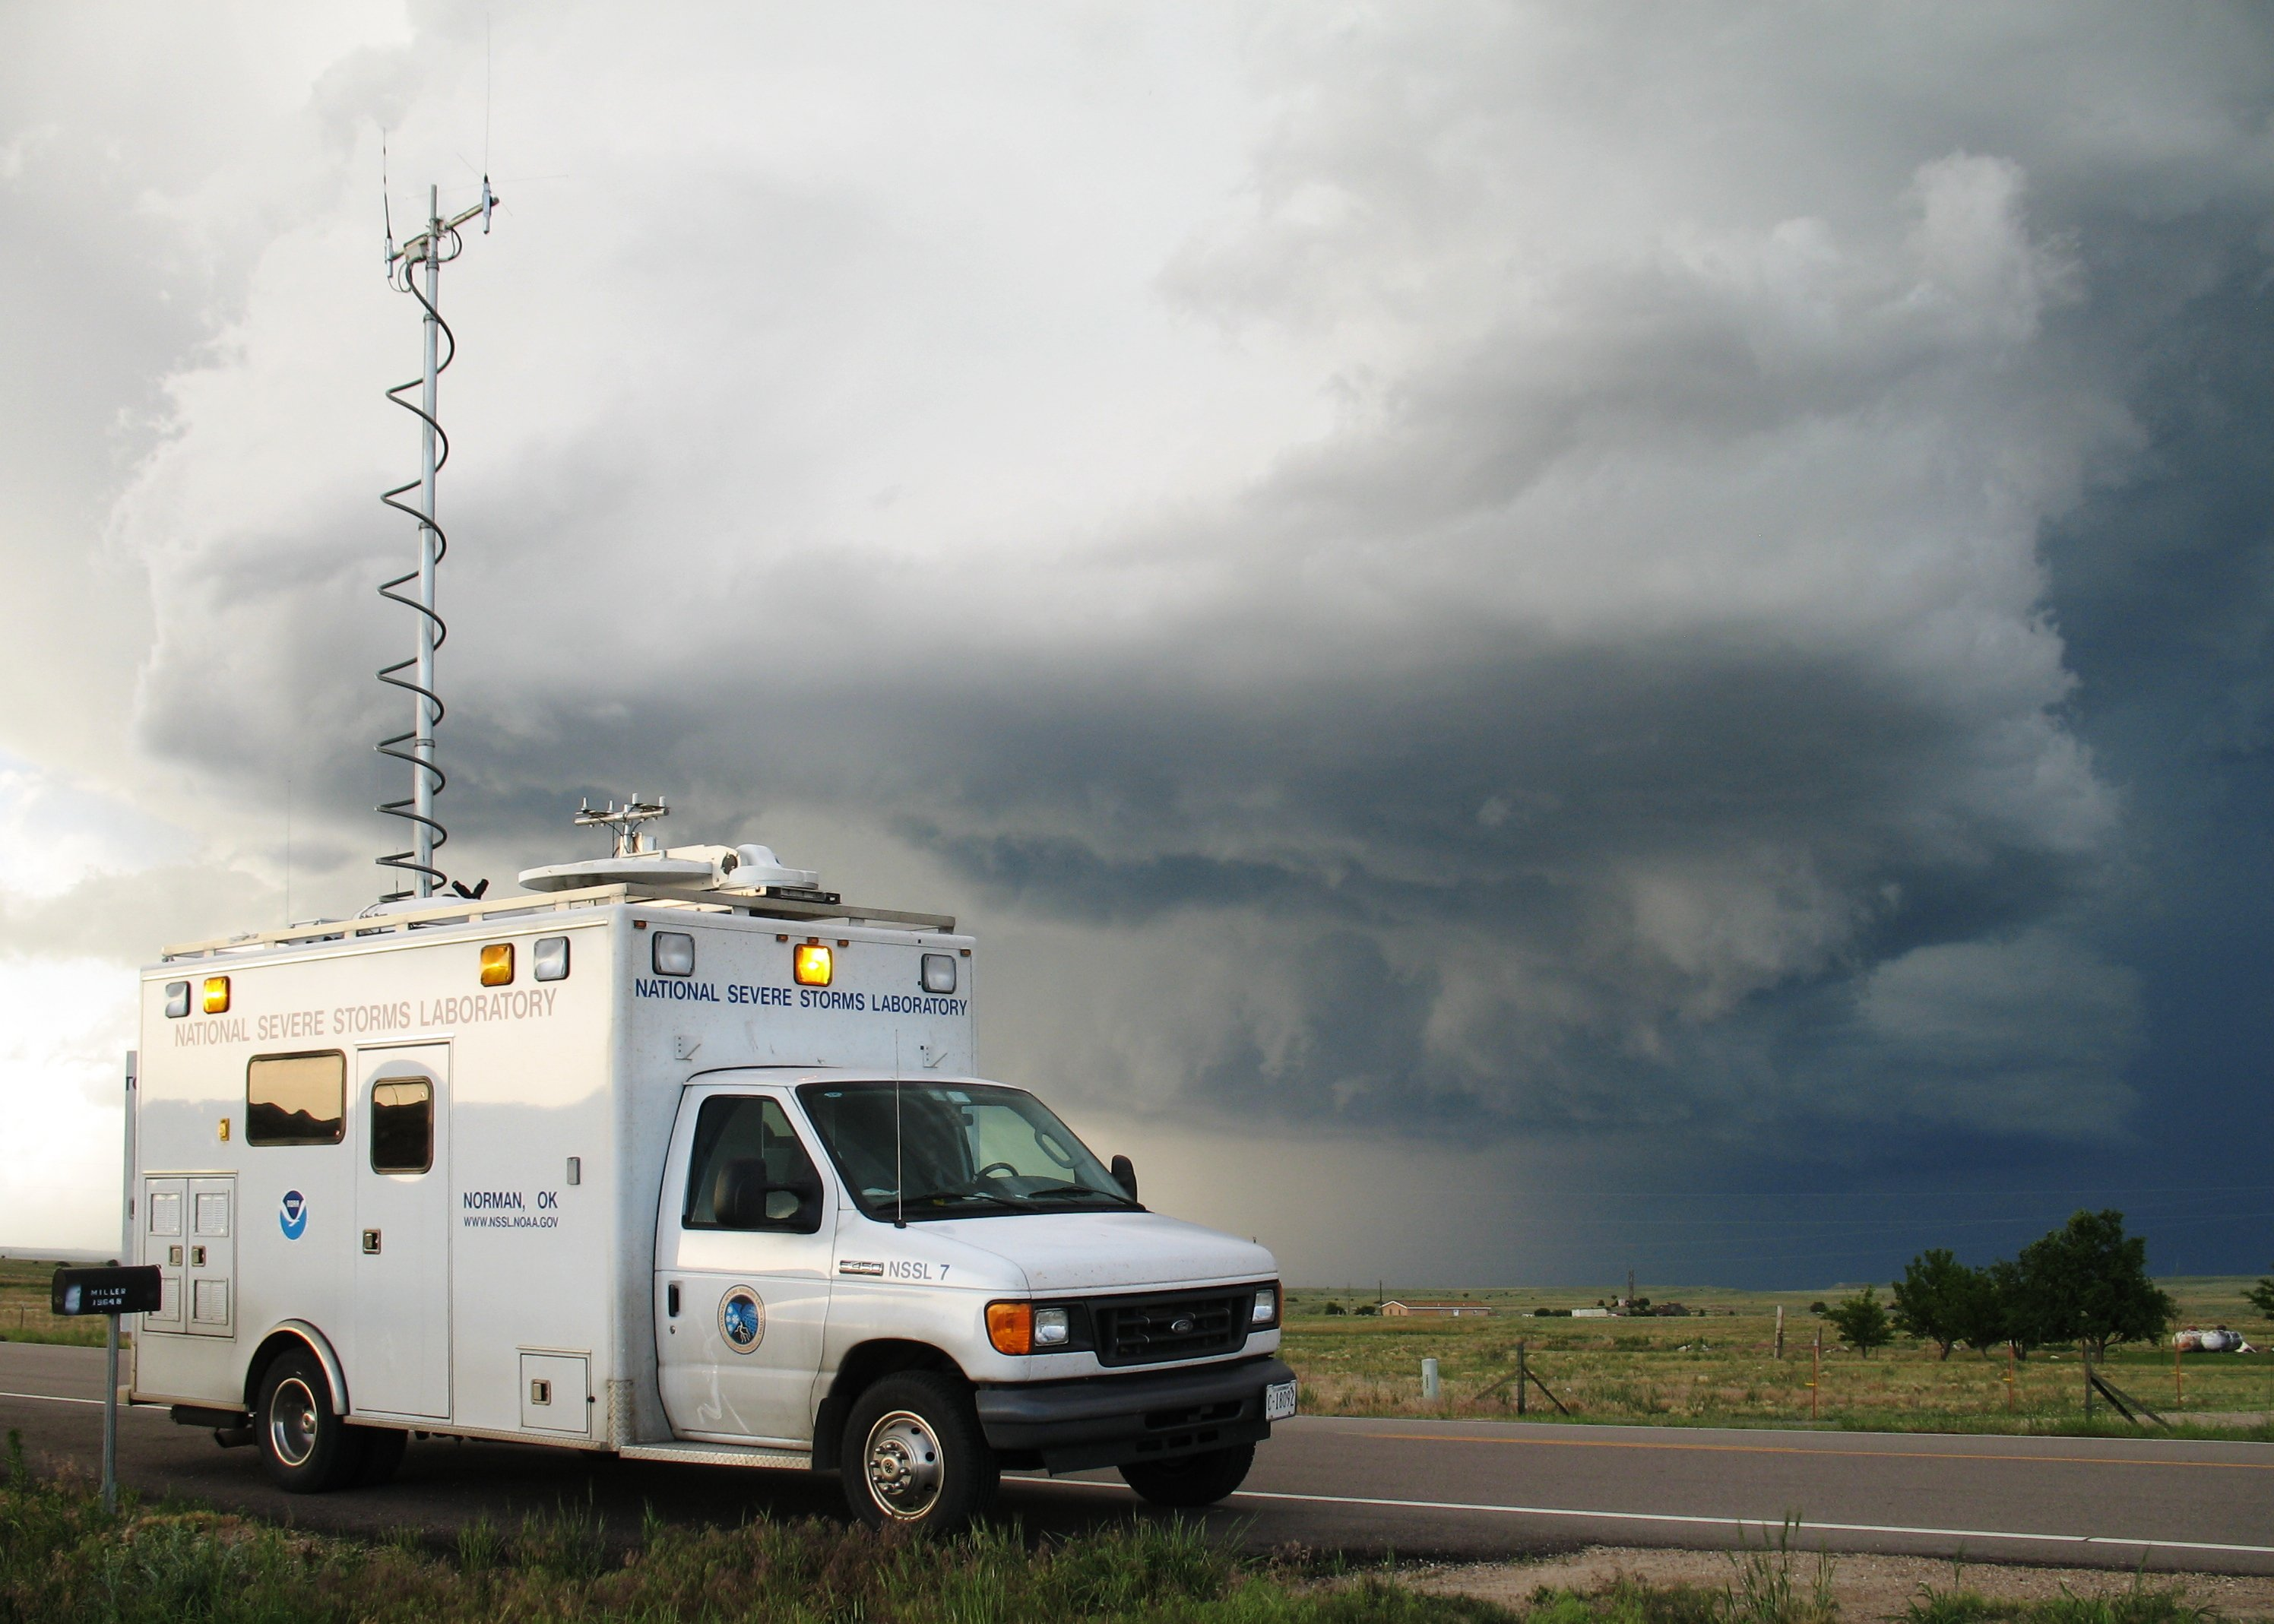 Nssl0310 - Flickr - NOAA Photo Library